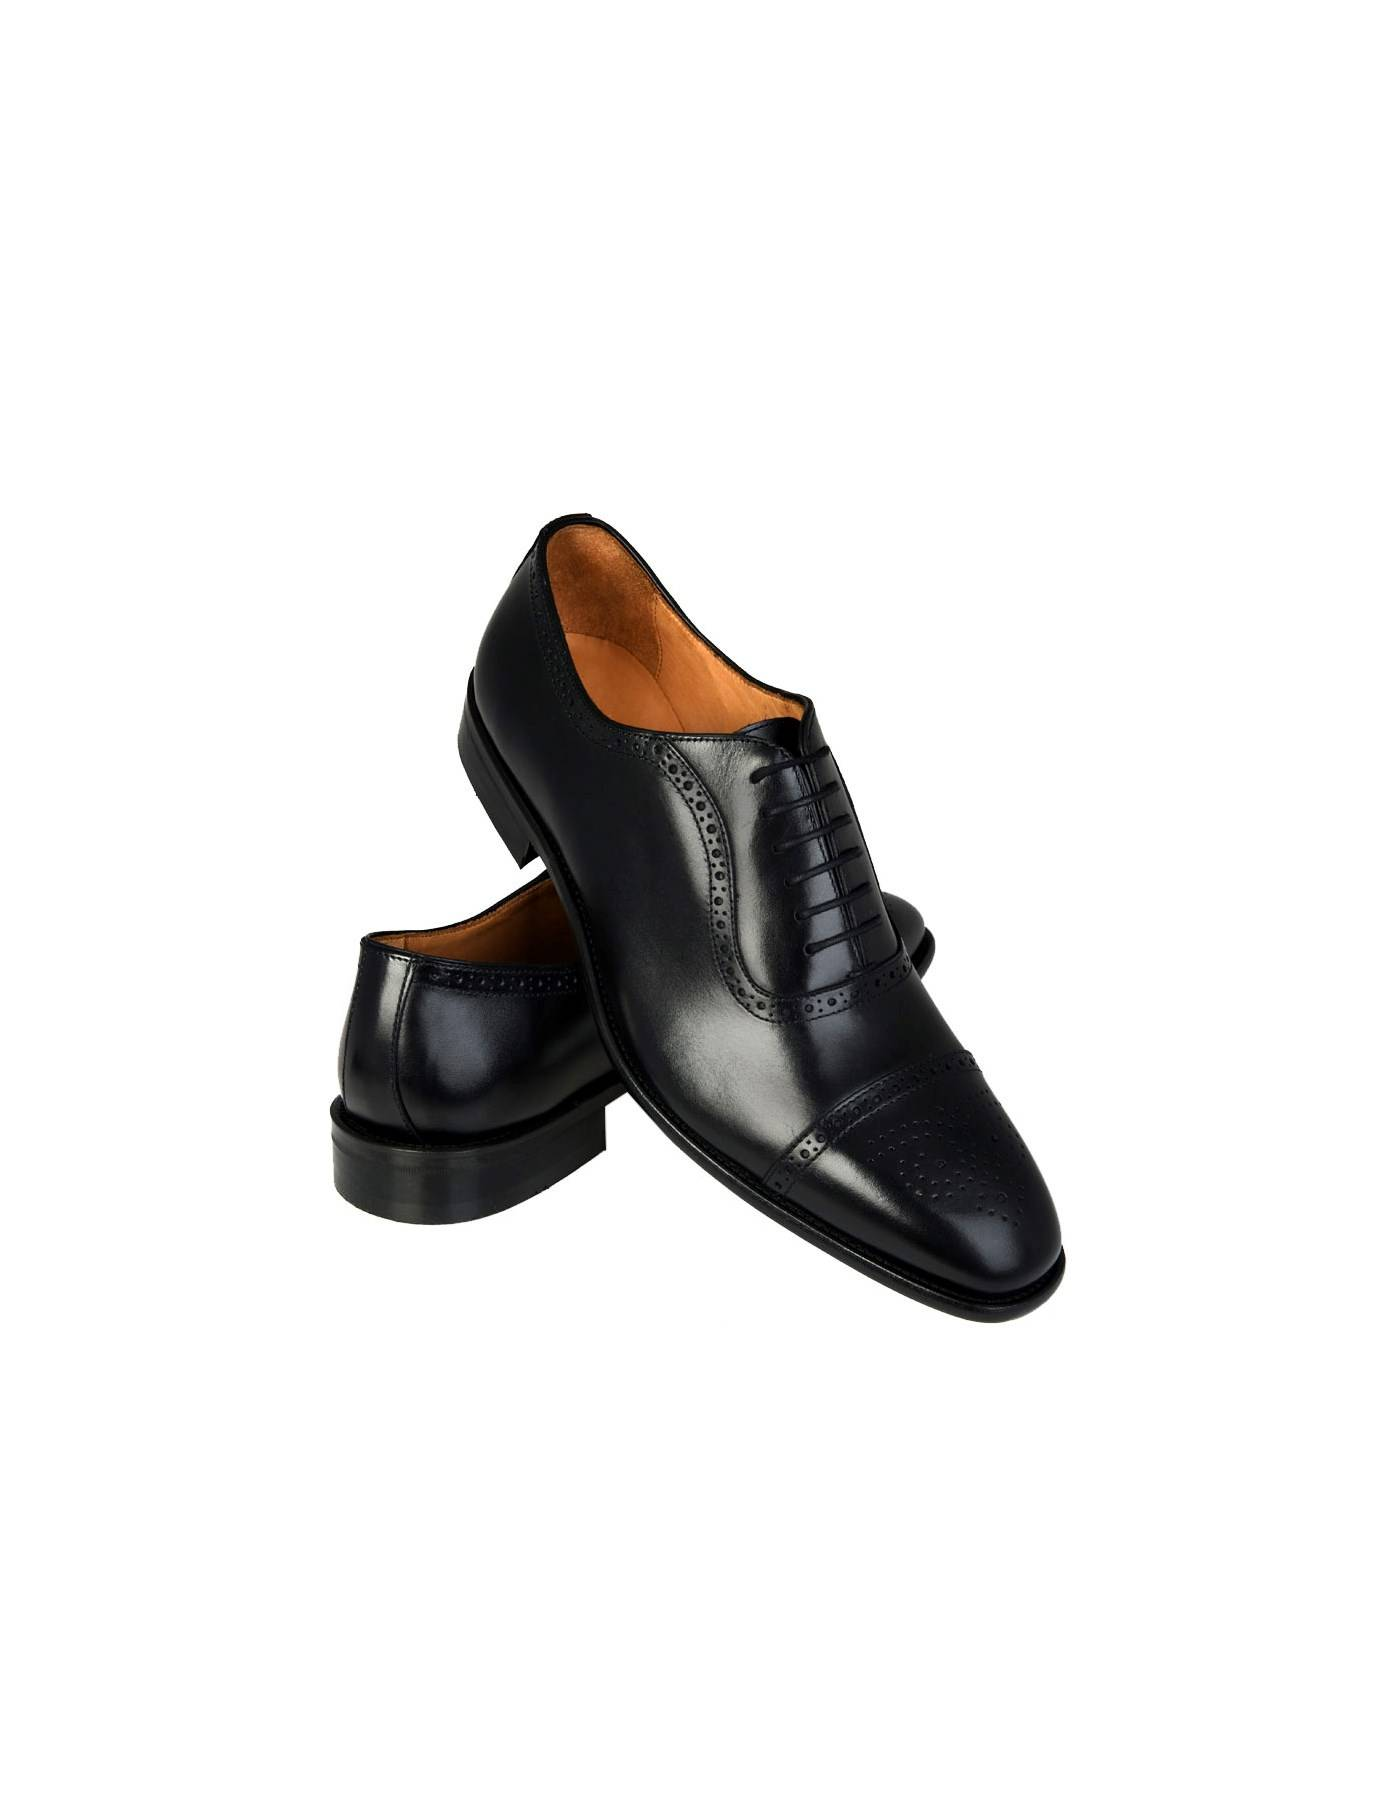 Hawes & Curtis Men's Leather Toe Cap Semi Brogue Shoes in Black Size 10